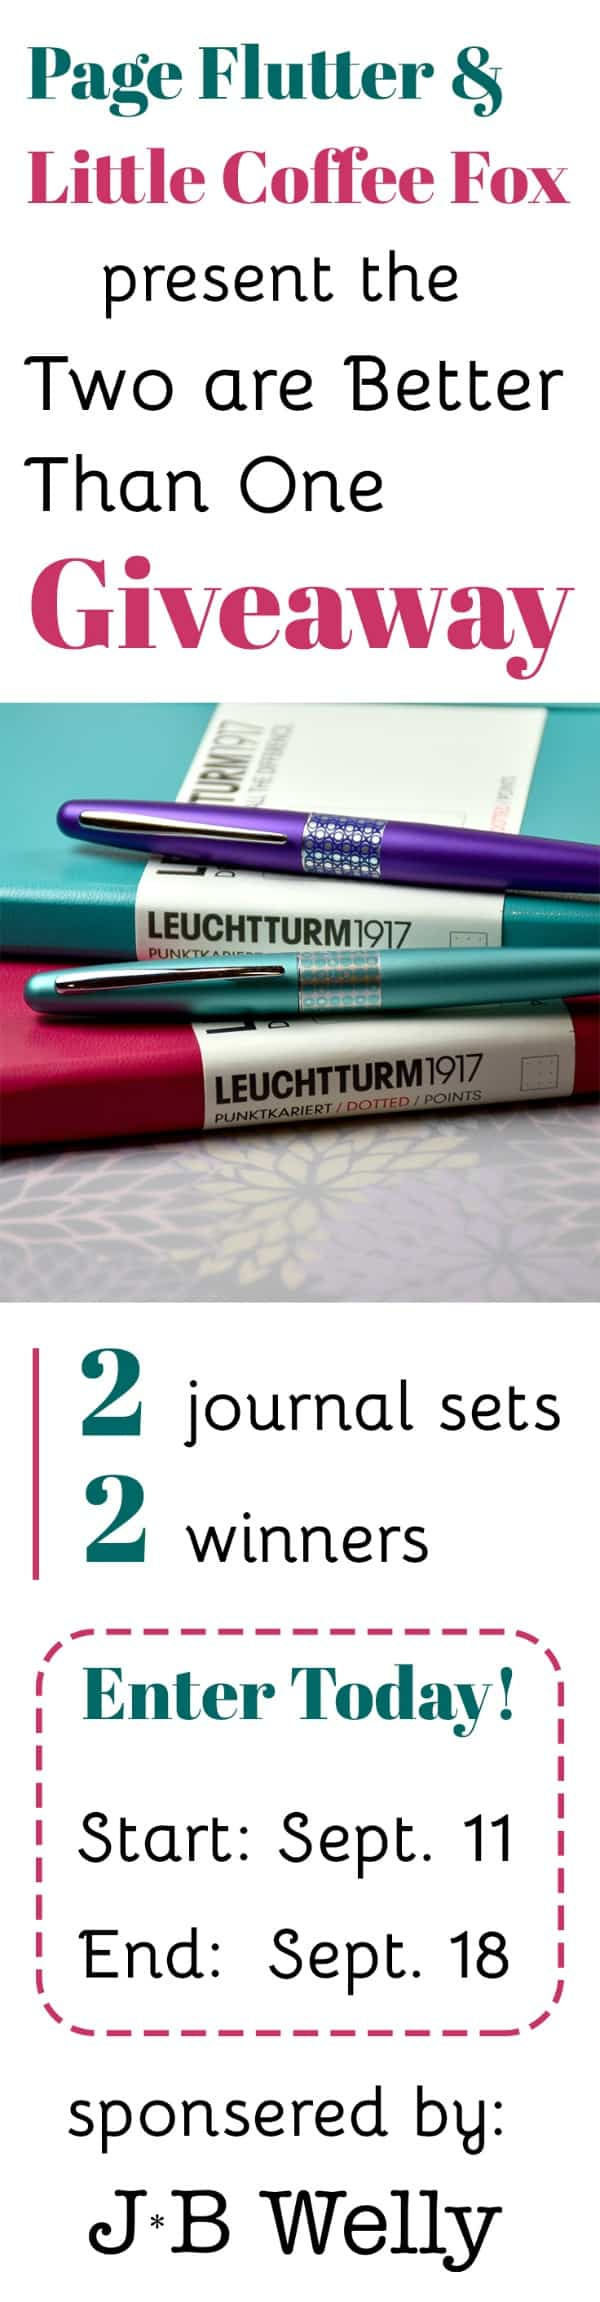 We're celebrating J*B Welly's wedding with a giveaway! 2 bullet journal kits, 2 winners. Enter today; ends Sept 18th!